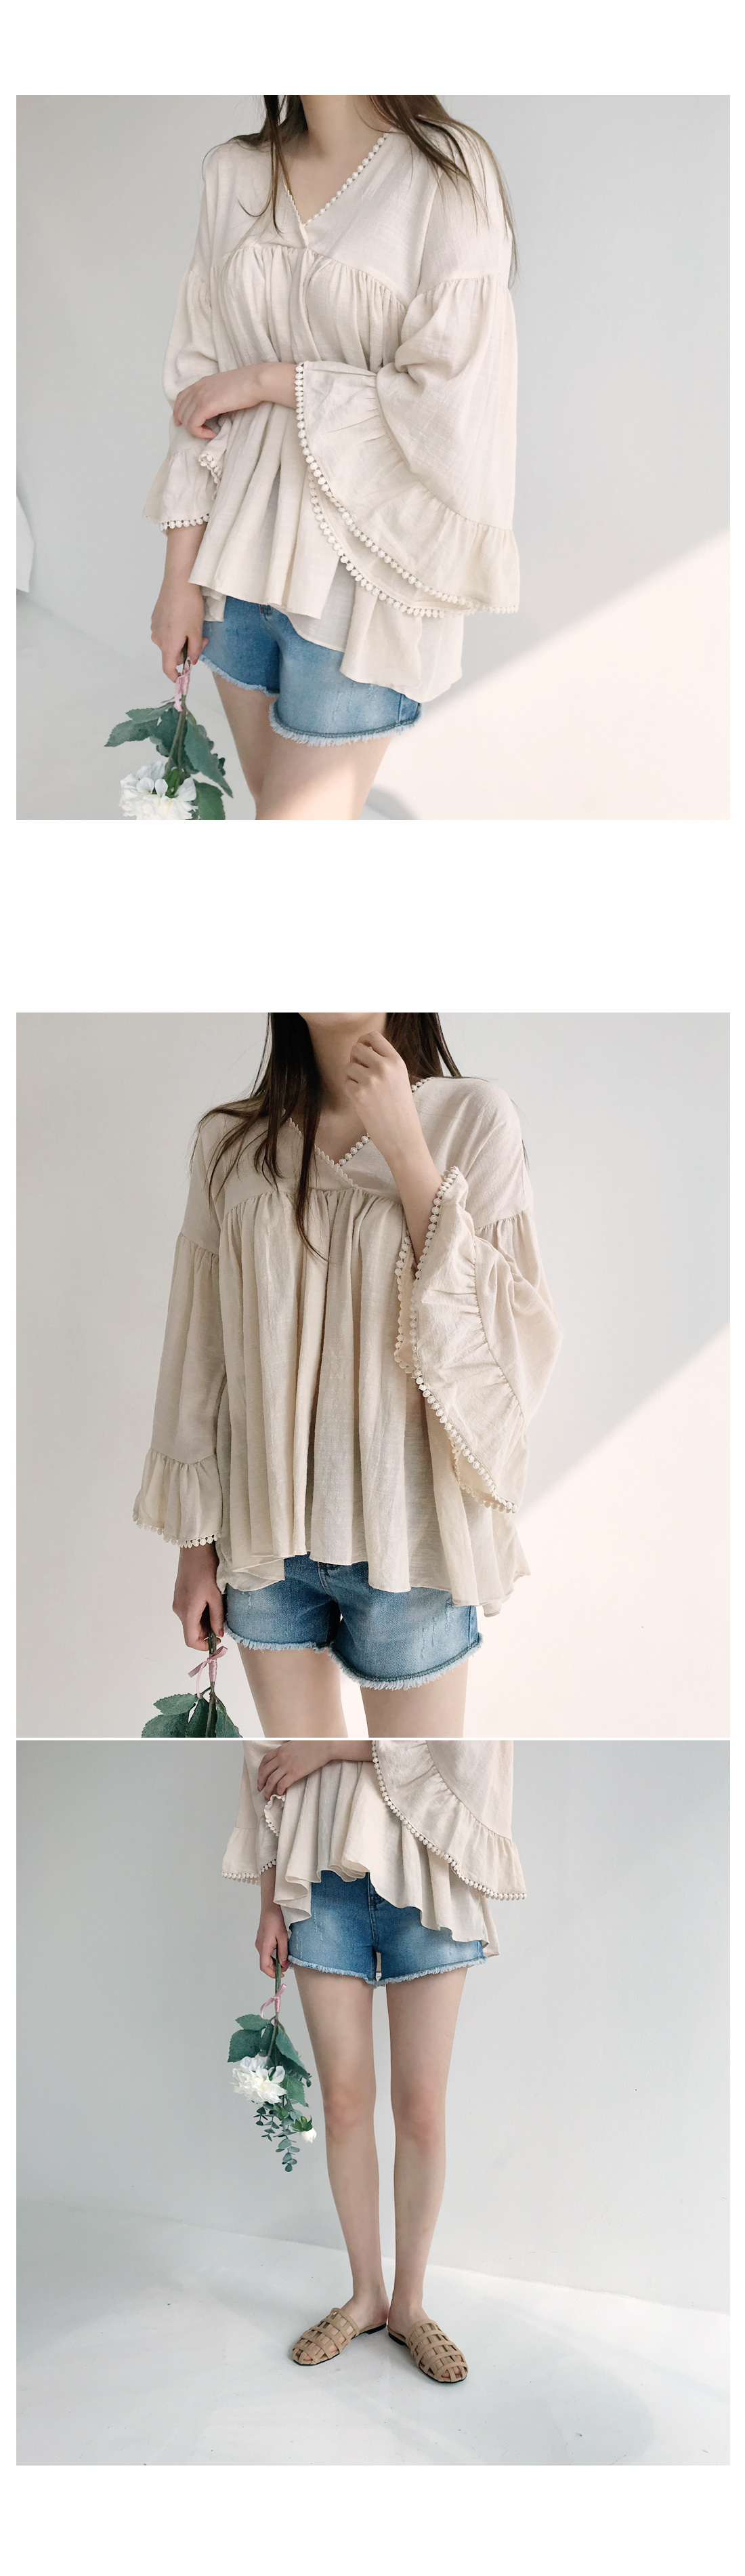 Bell lace blouse